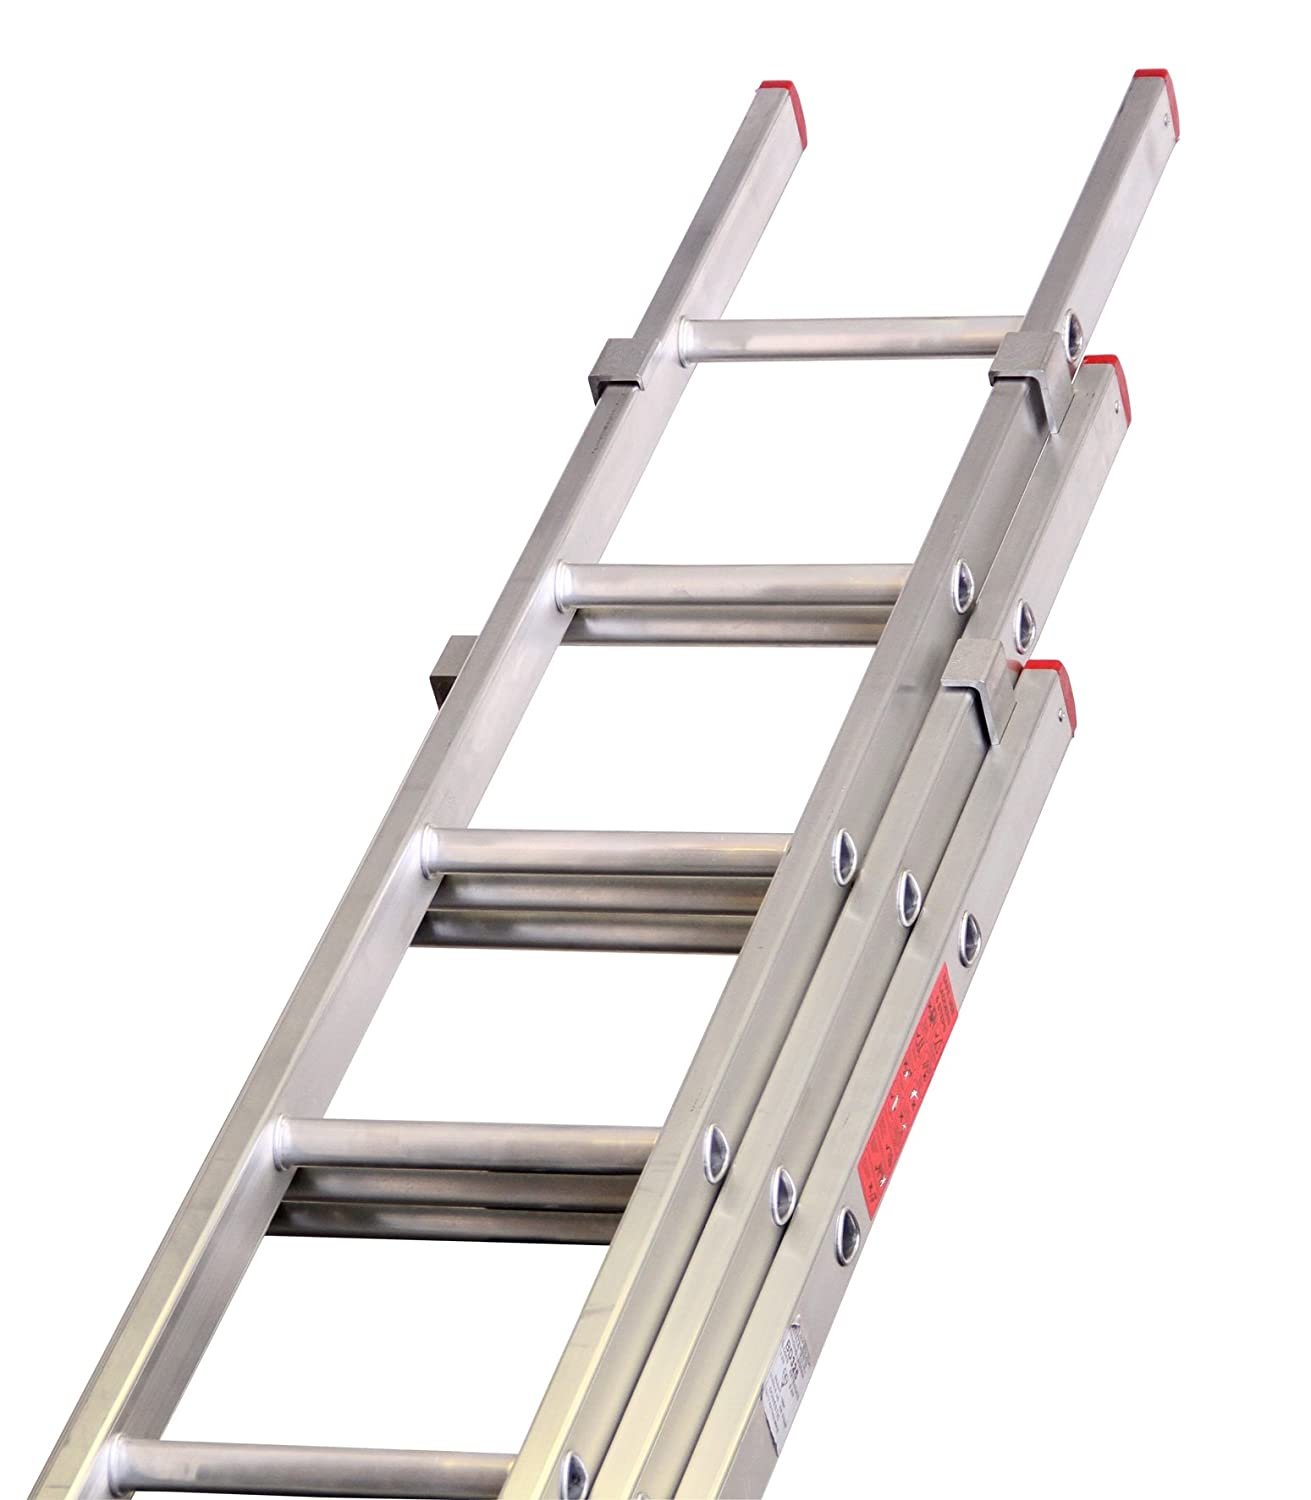 Lyte LYTBD325 3 Section Domestic Extension Ladder - Silver lyte Industries (Wales) Ltd